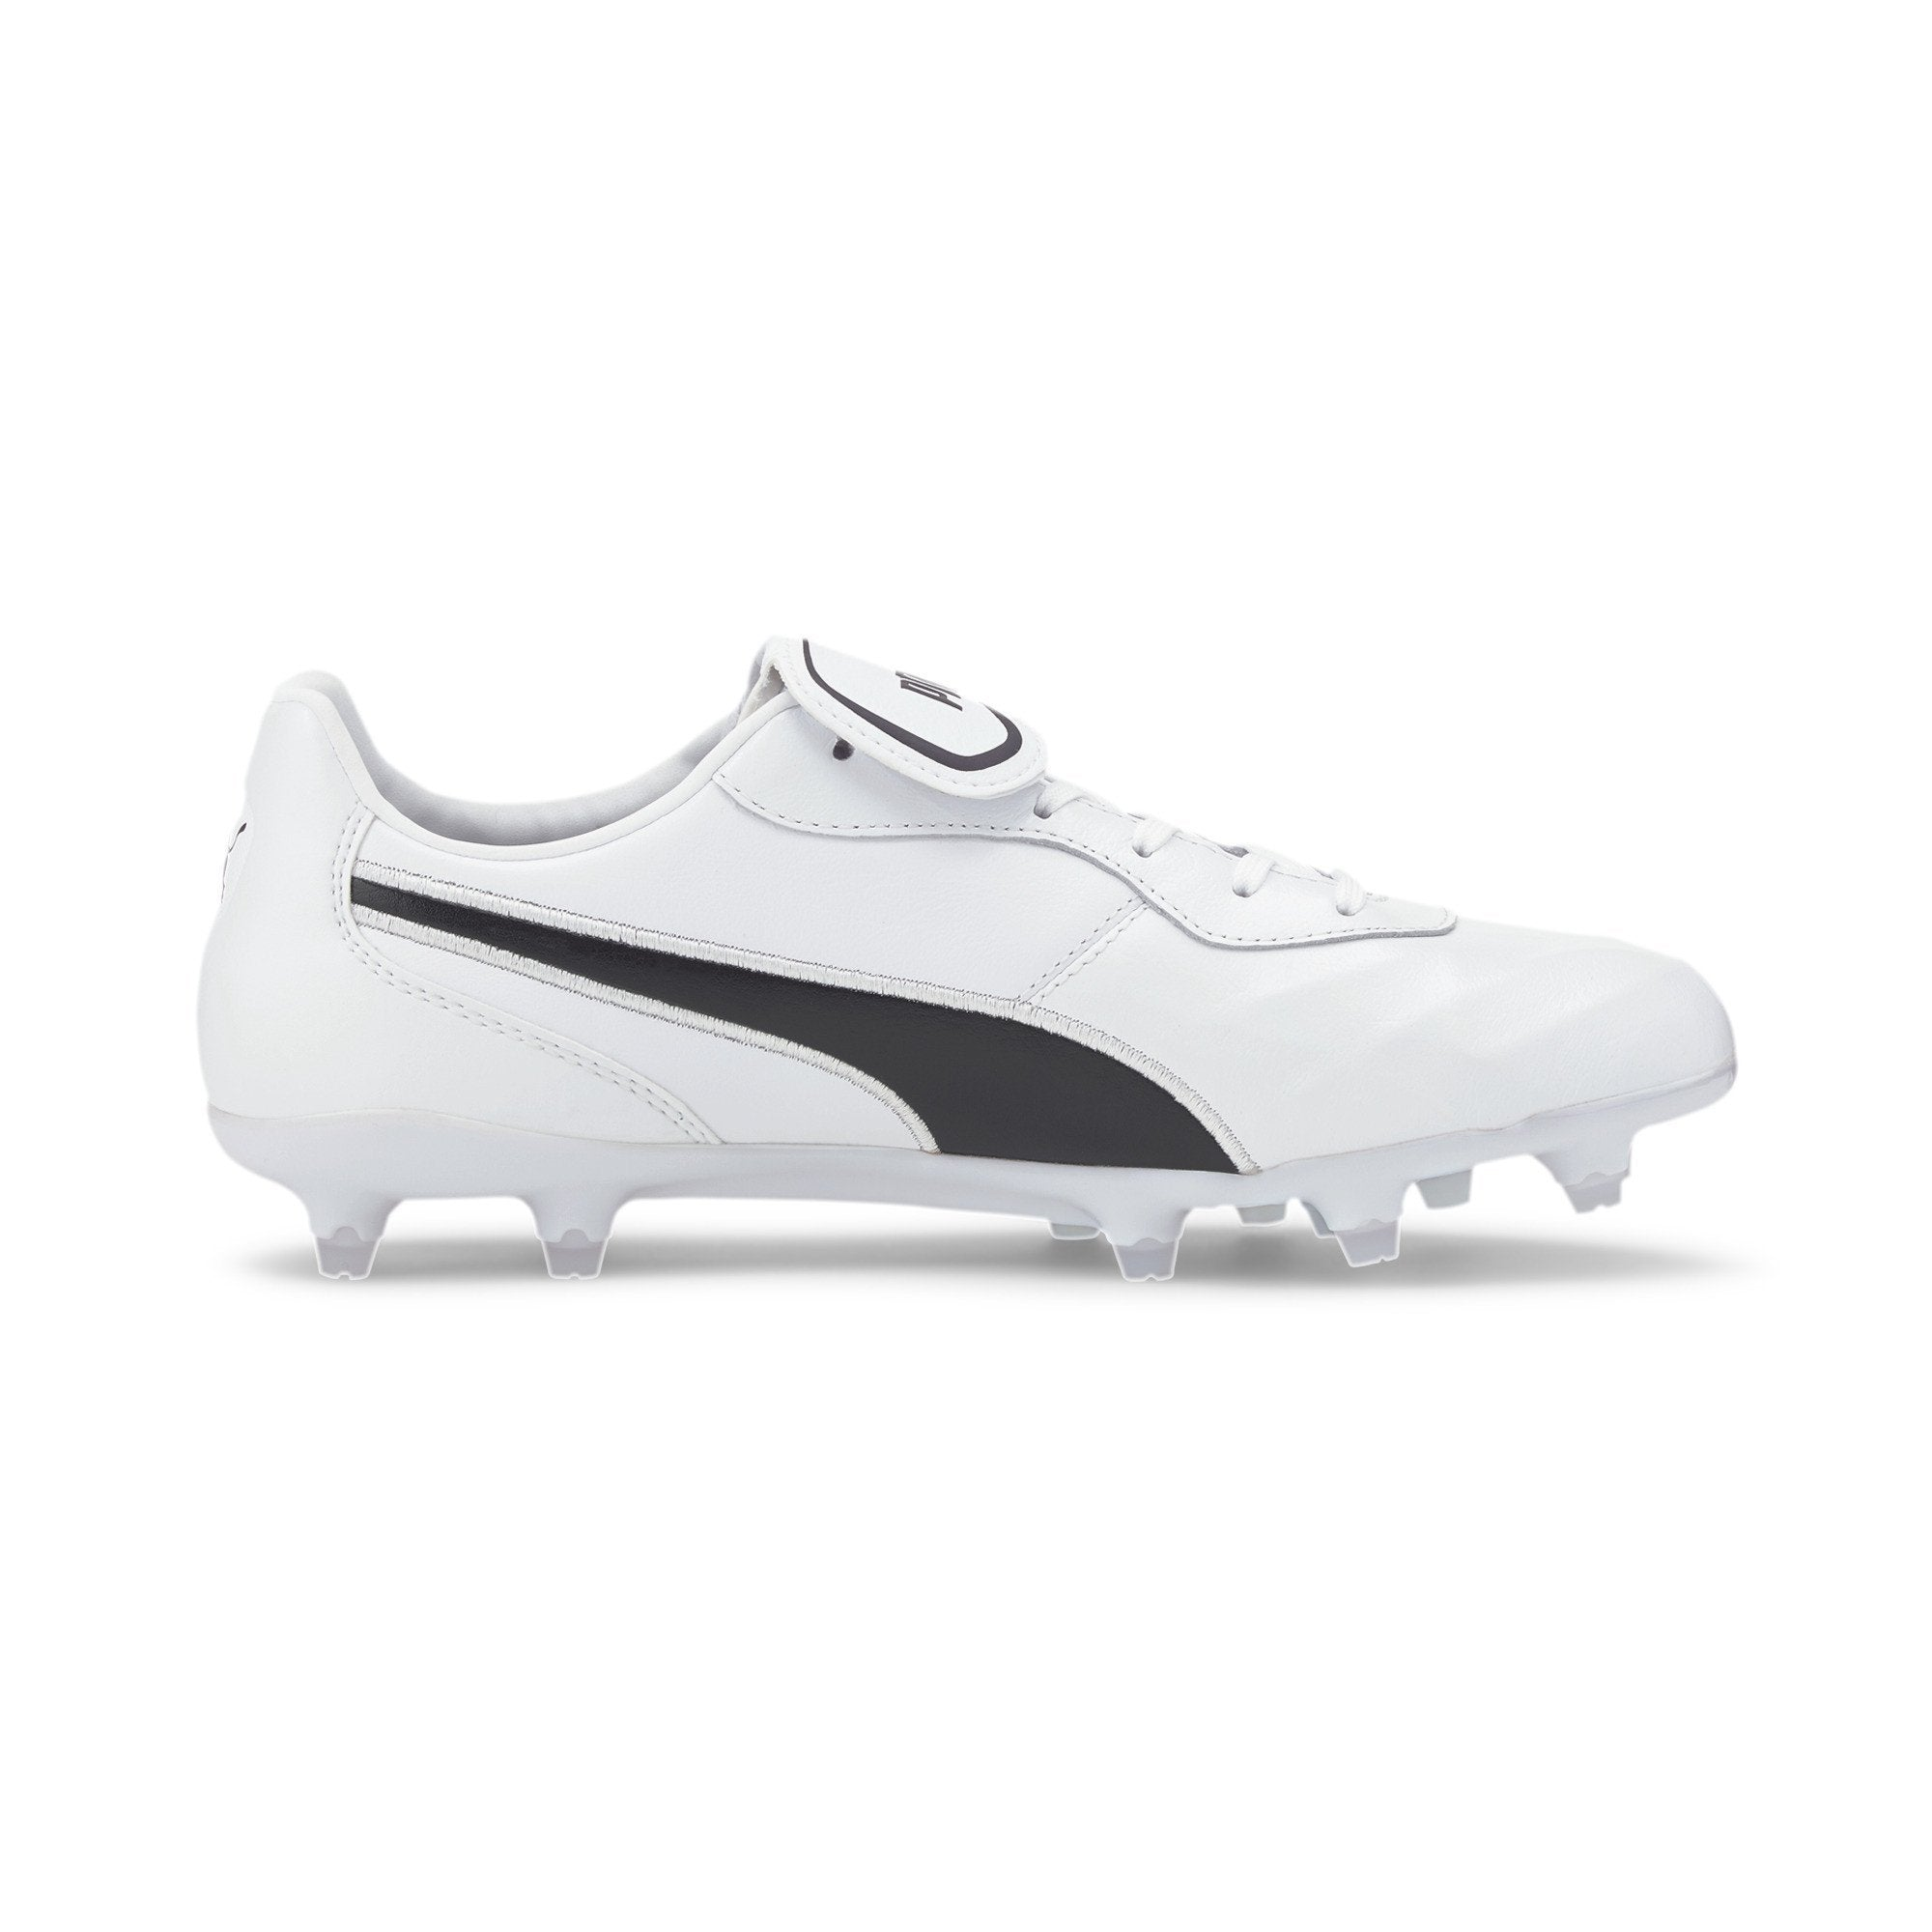 PUMA Men's King Top FG Soccer Cleats | 105607_02 Cleats Puma